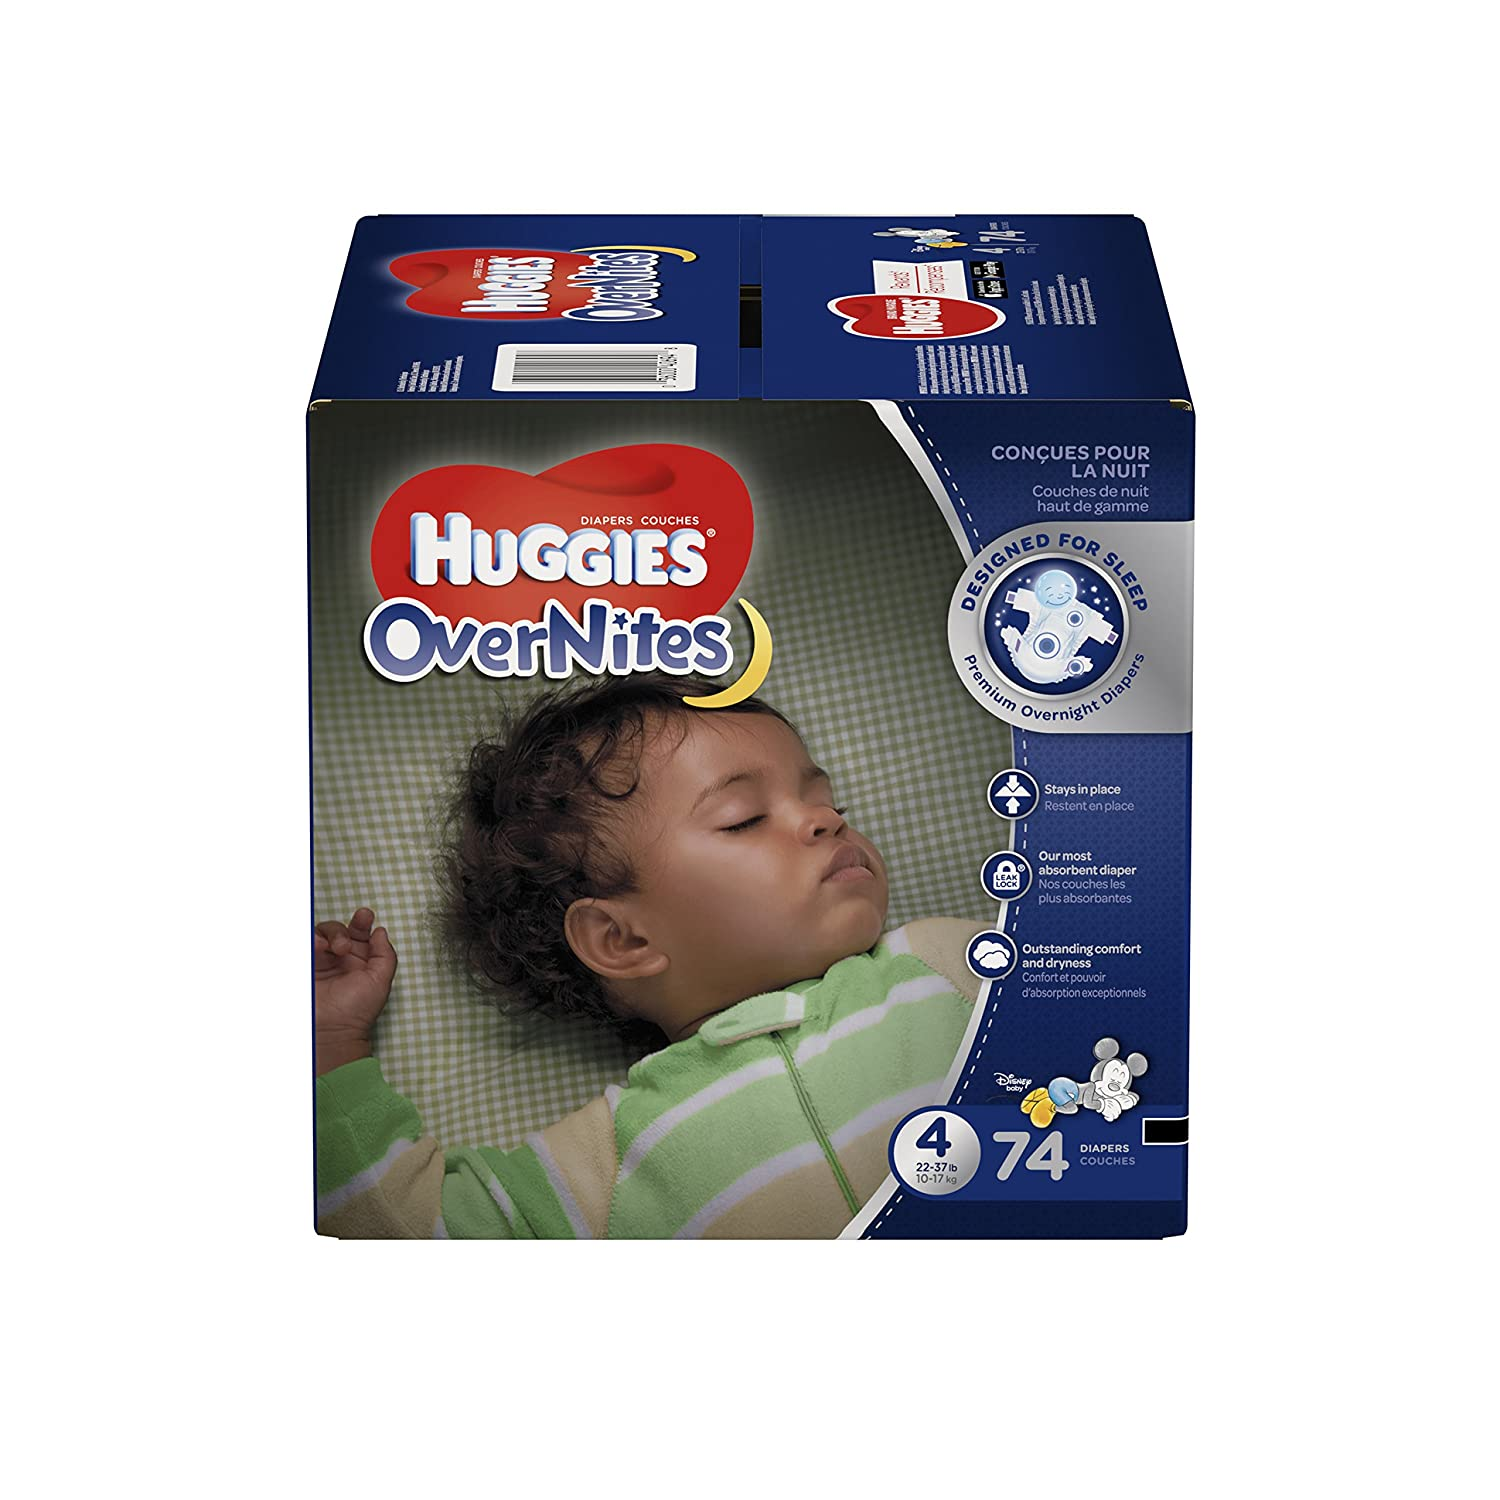 HUGGIES OVERNITES, Night Time, Baby Diapers, Size 3, 92ct Kimberly-Clark Corp. CA 10036000406907